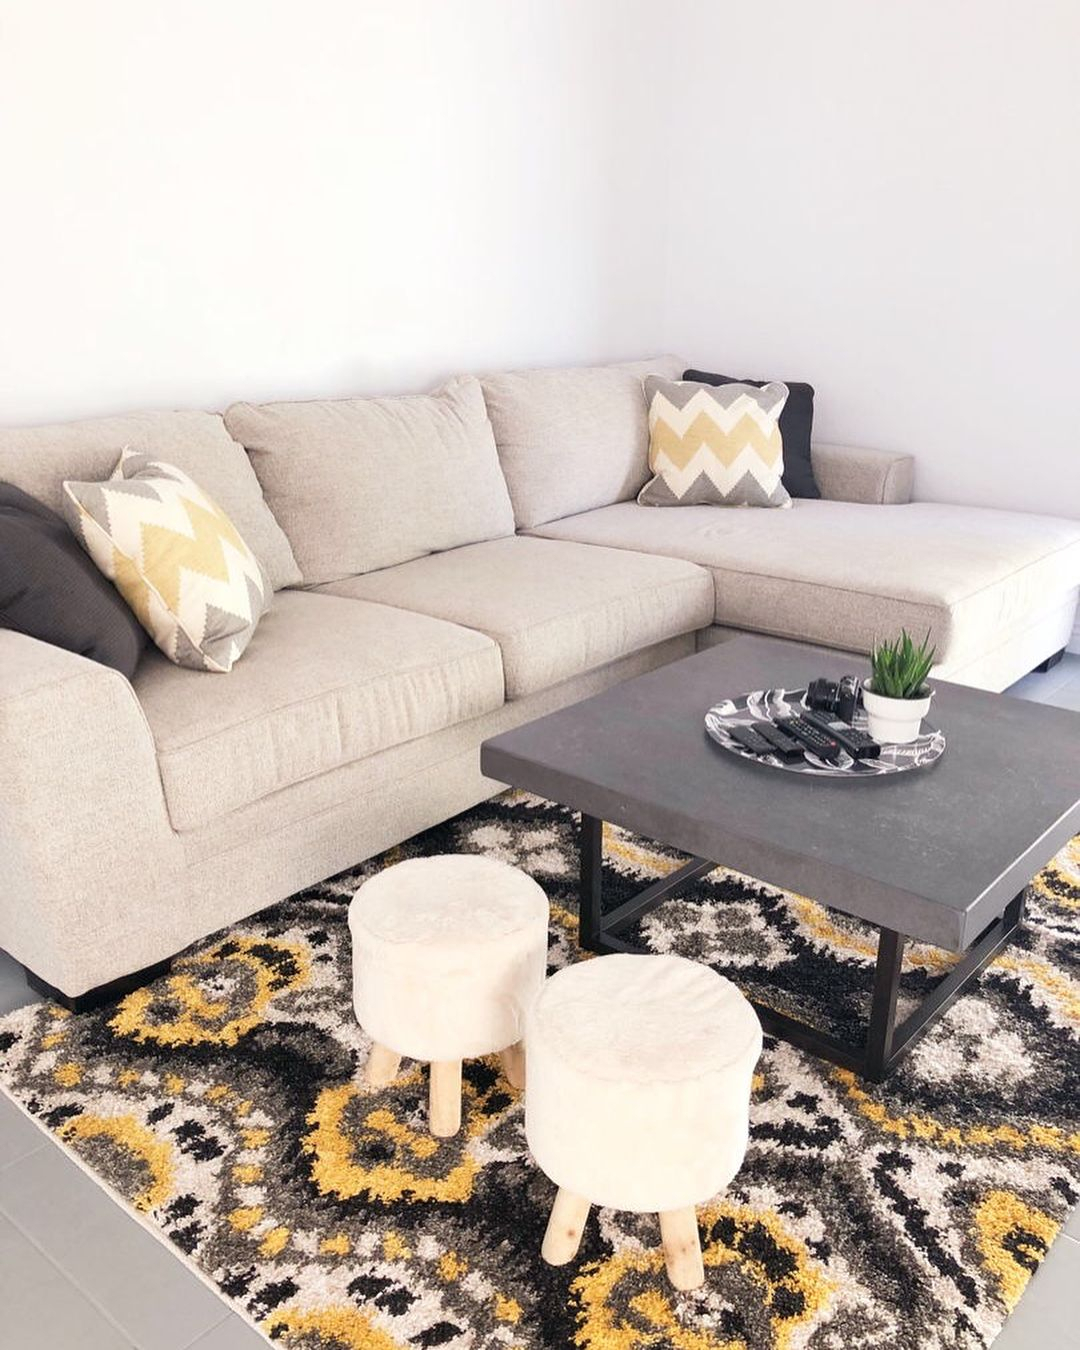 Delano 2 Piece Sectional W/raf Oversized Chaise | Your Designs for Gwen Sofa Chairs by Nate Berkus and Jeremiah Brent